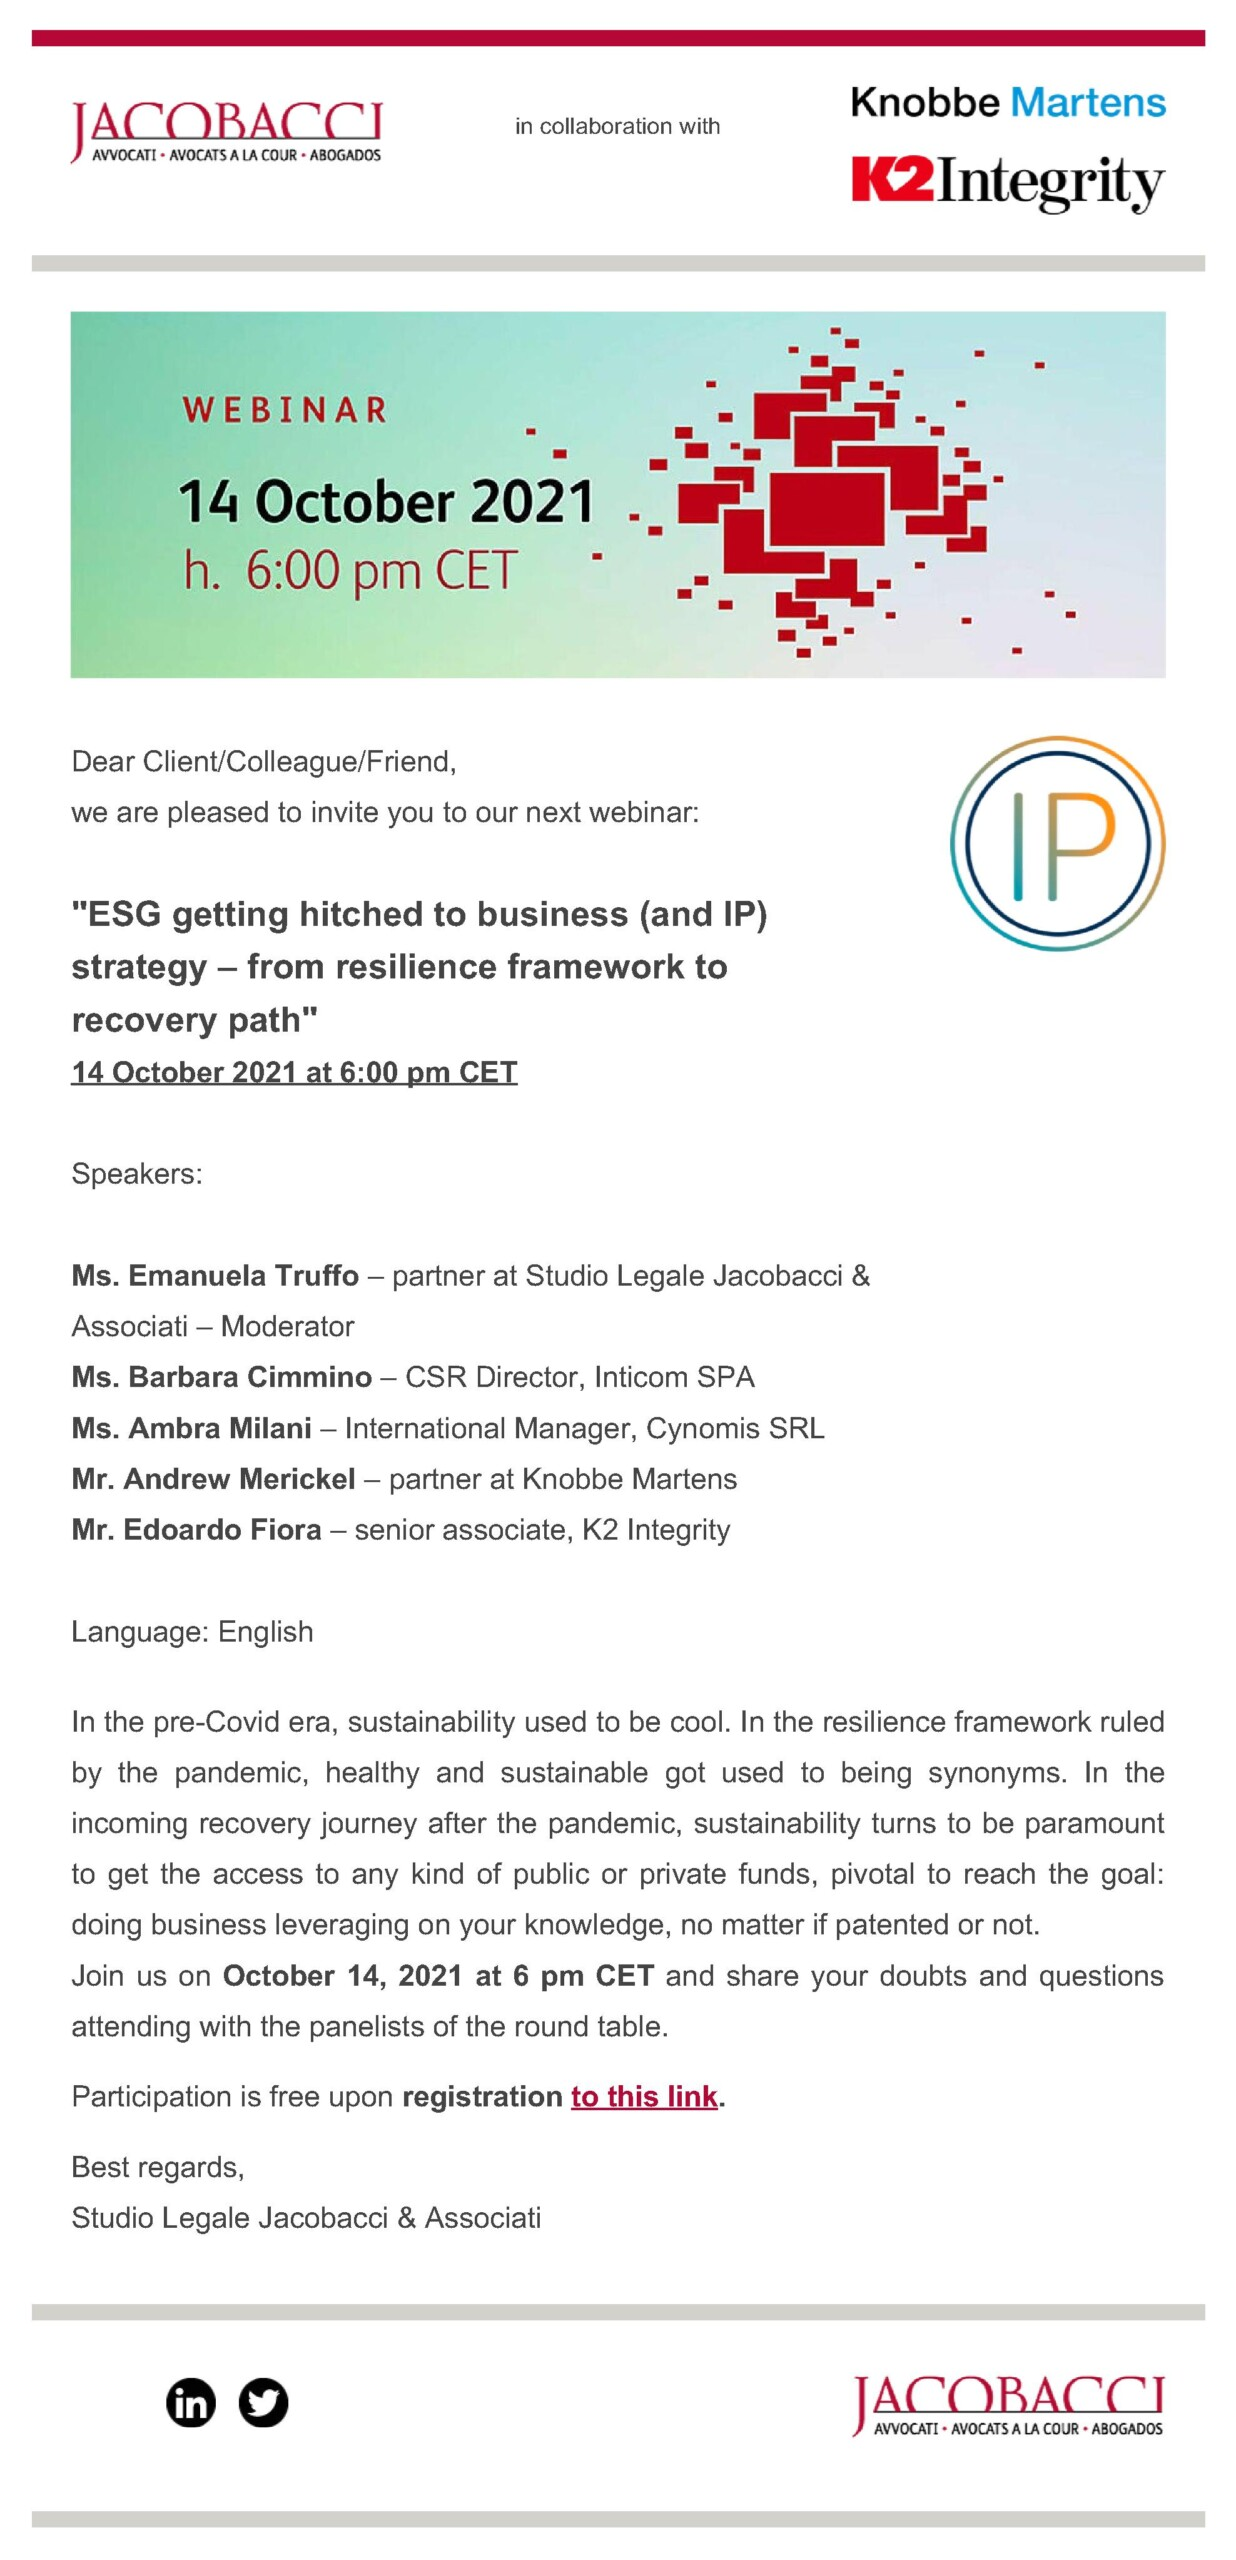 Jacobacci WEBINAR - ESG getting hitched to business (and IP) strategy - 14 October 2021-ff304024